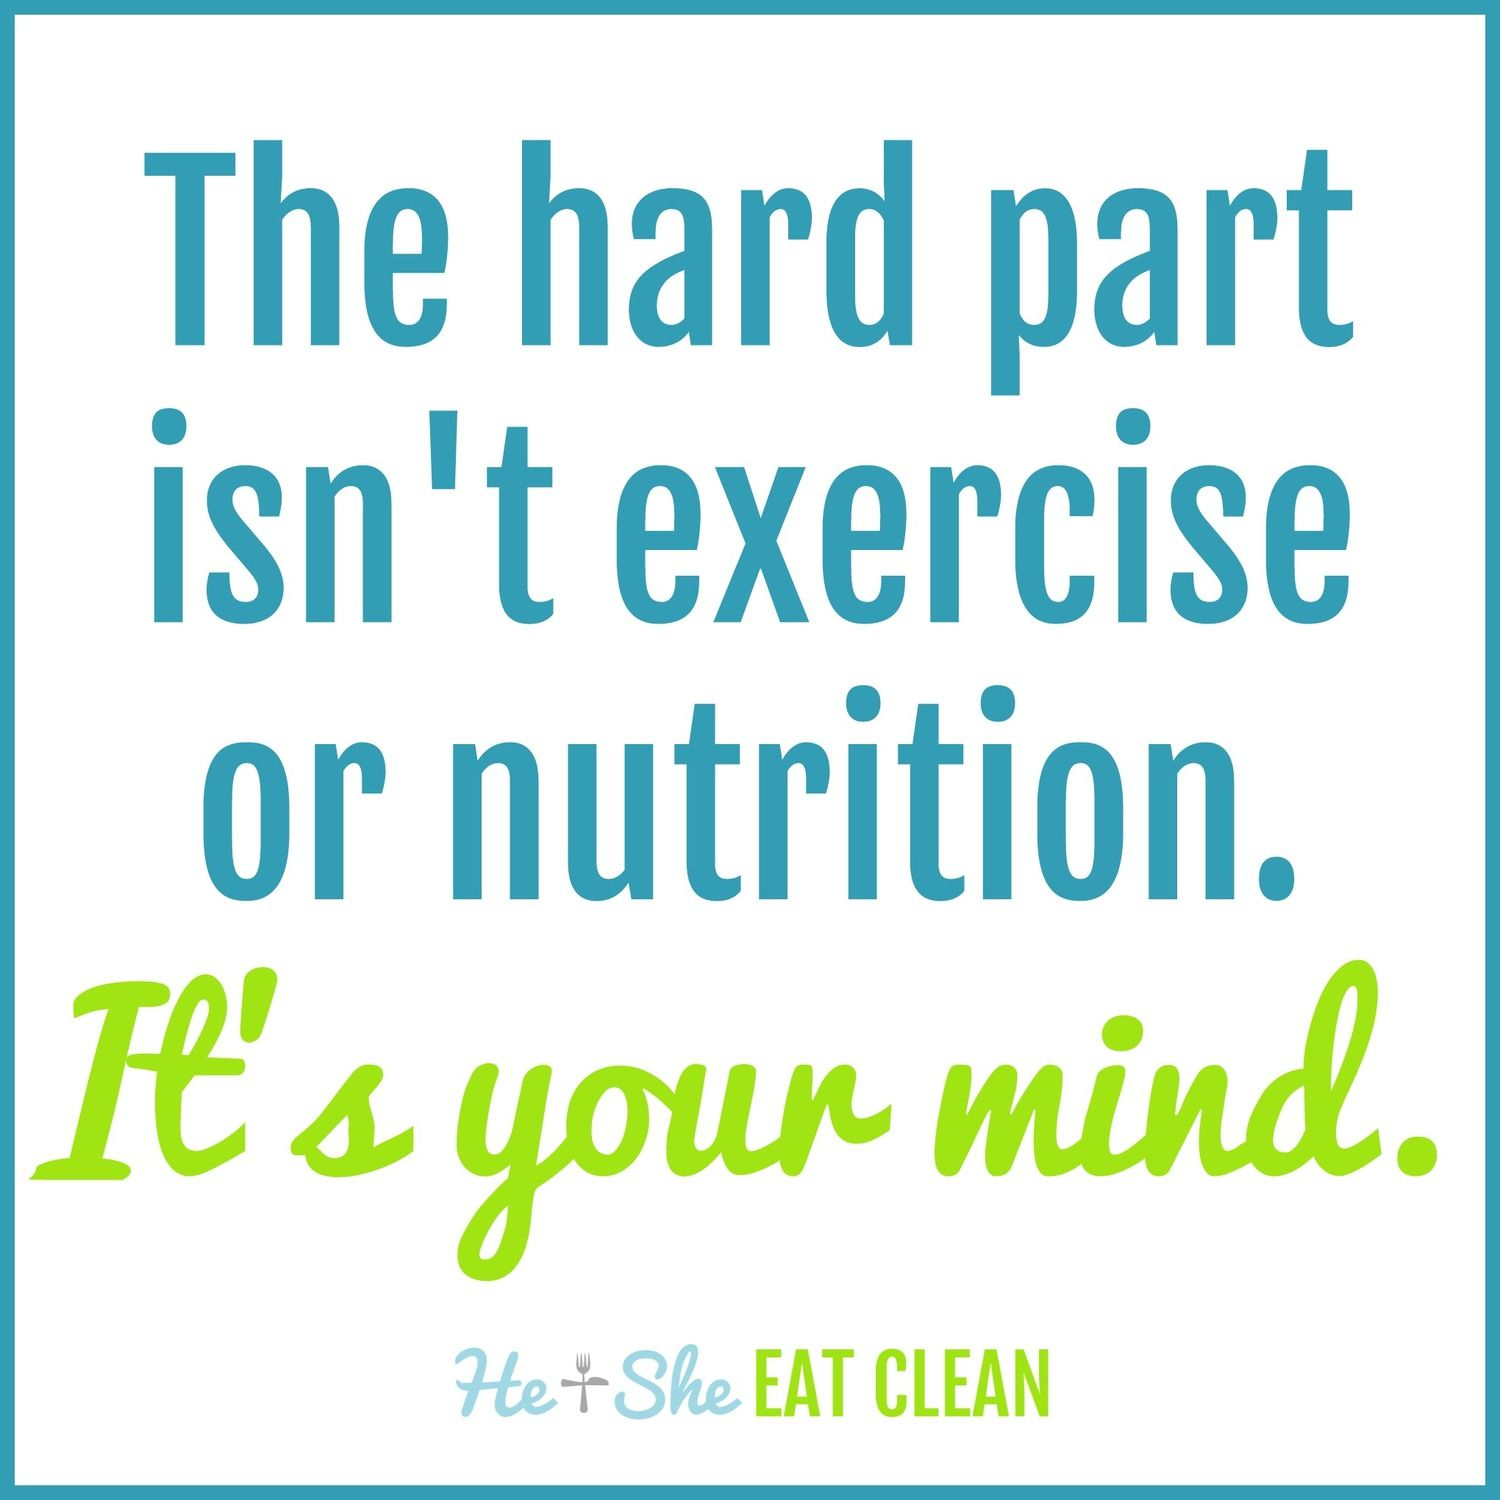 Fitness Quotes: 5 Fitness Quotes To Motivate You!